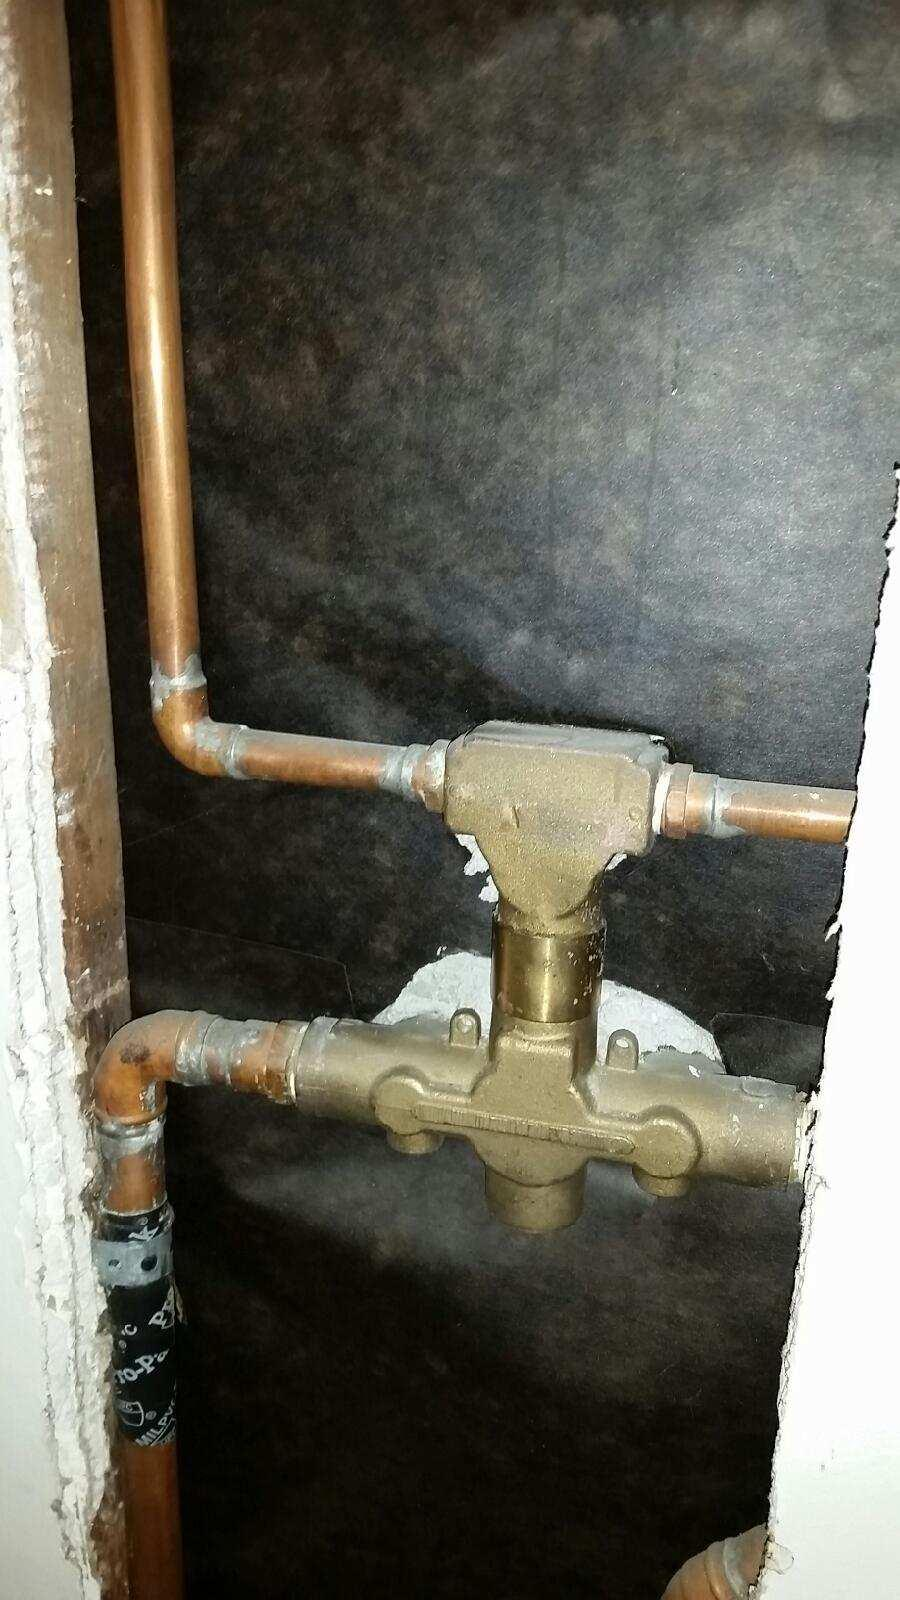 Recogize this shower diverter?-2015090295102622.jpg